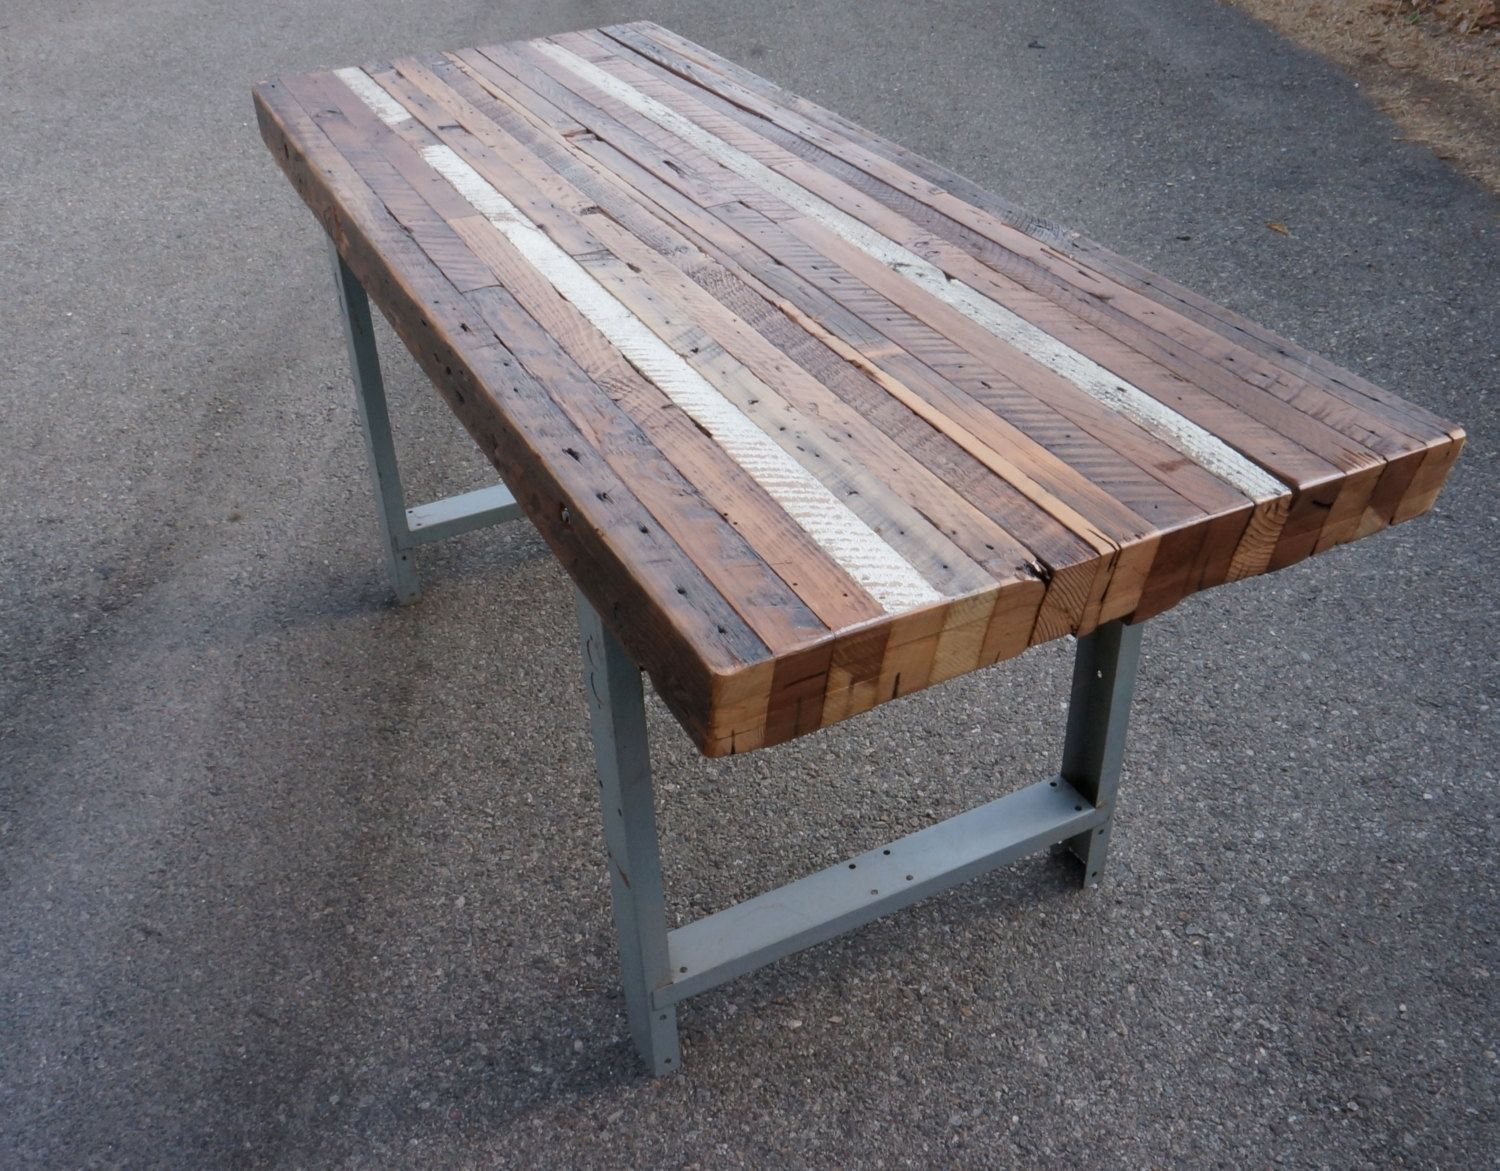 Handmade custom outdoor indoor rustic industrial for Wood table top designs